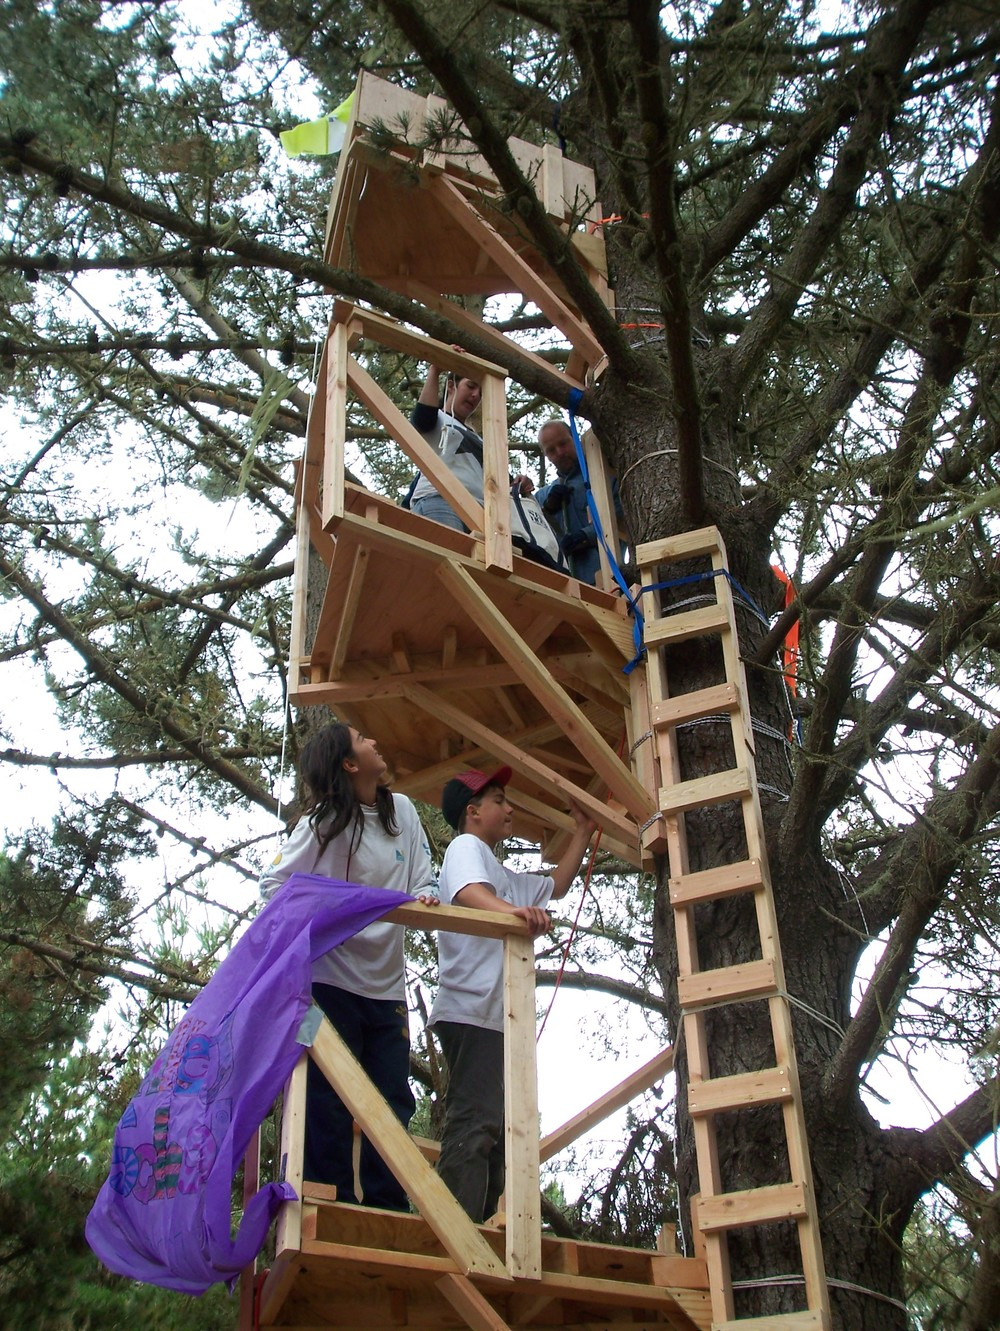 A three story tree-house takes shape